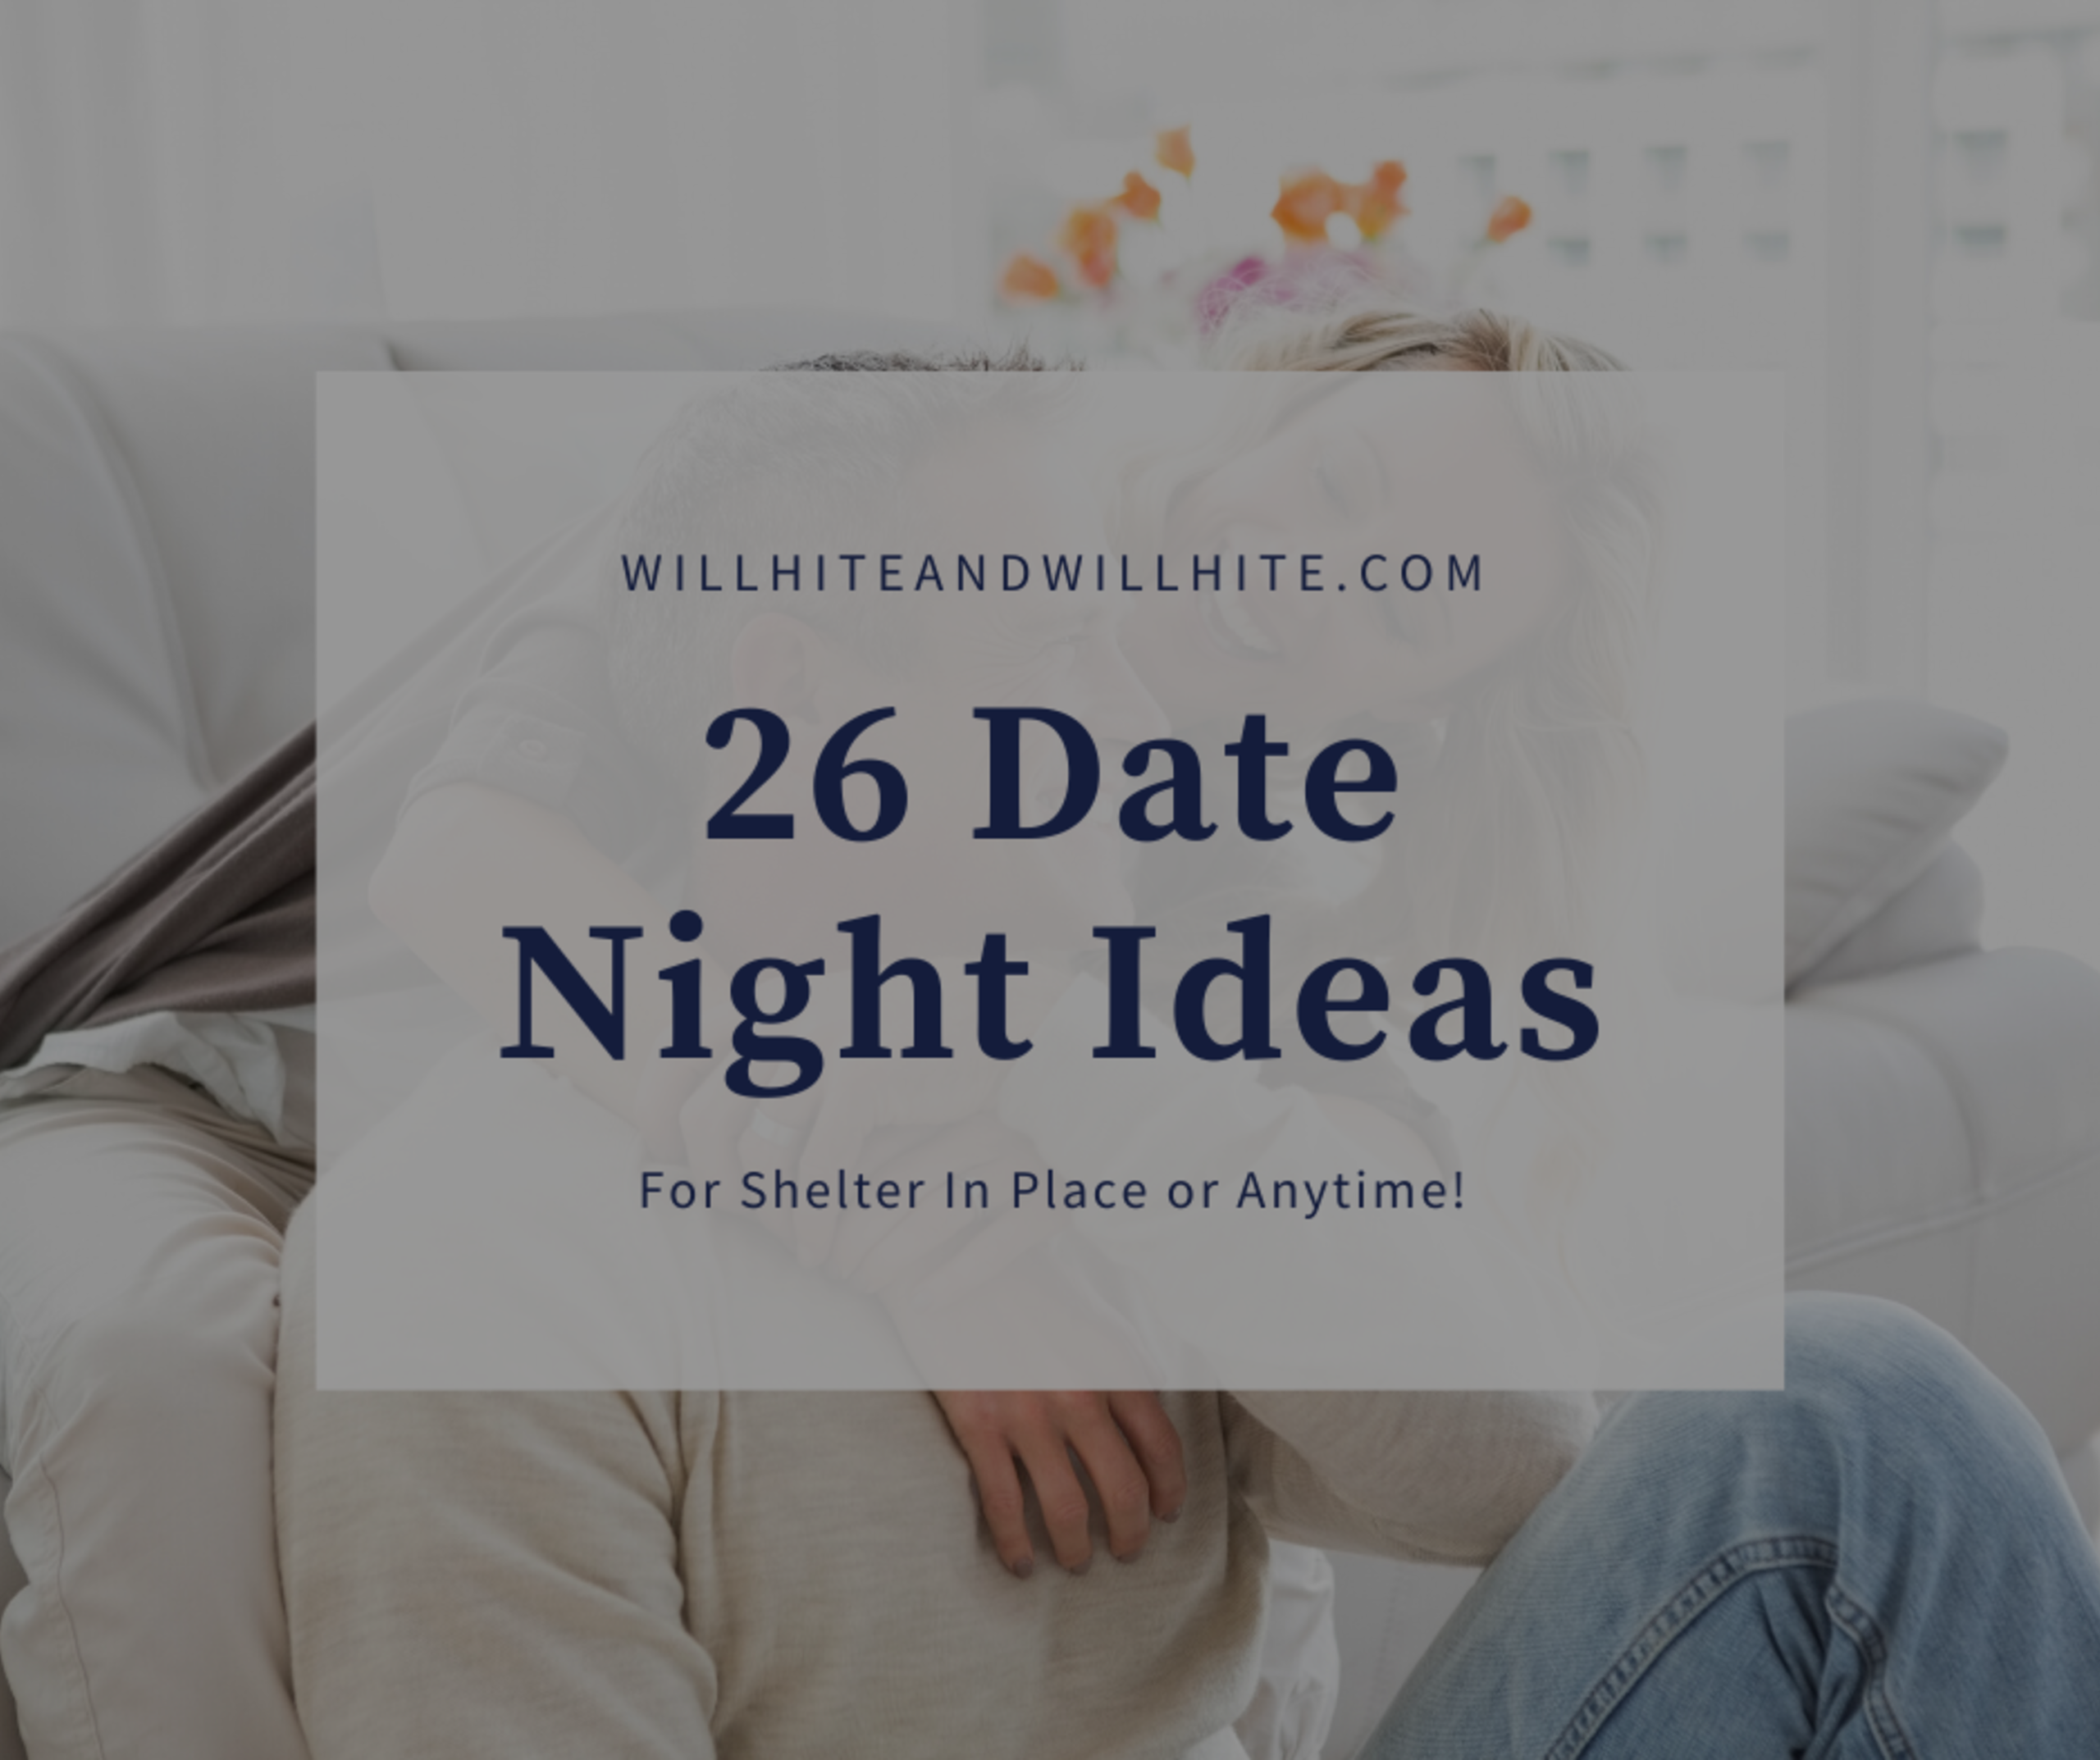 26 Date Night Ideas For Shelter In Place